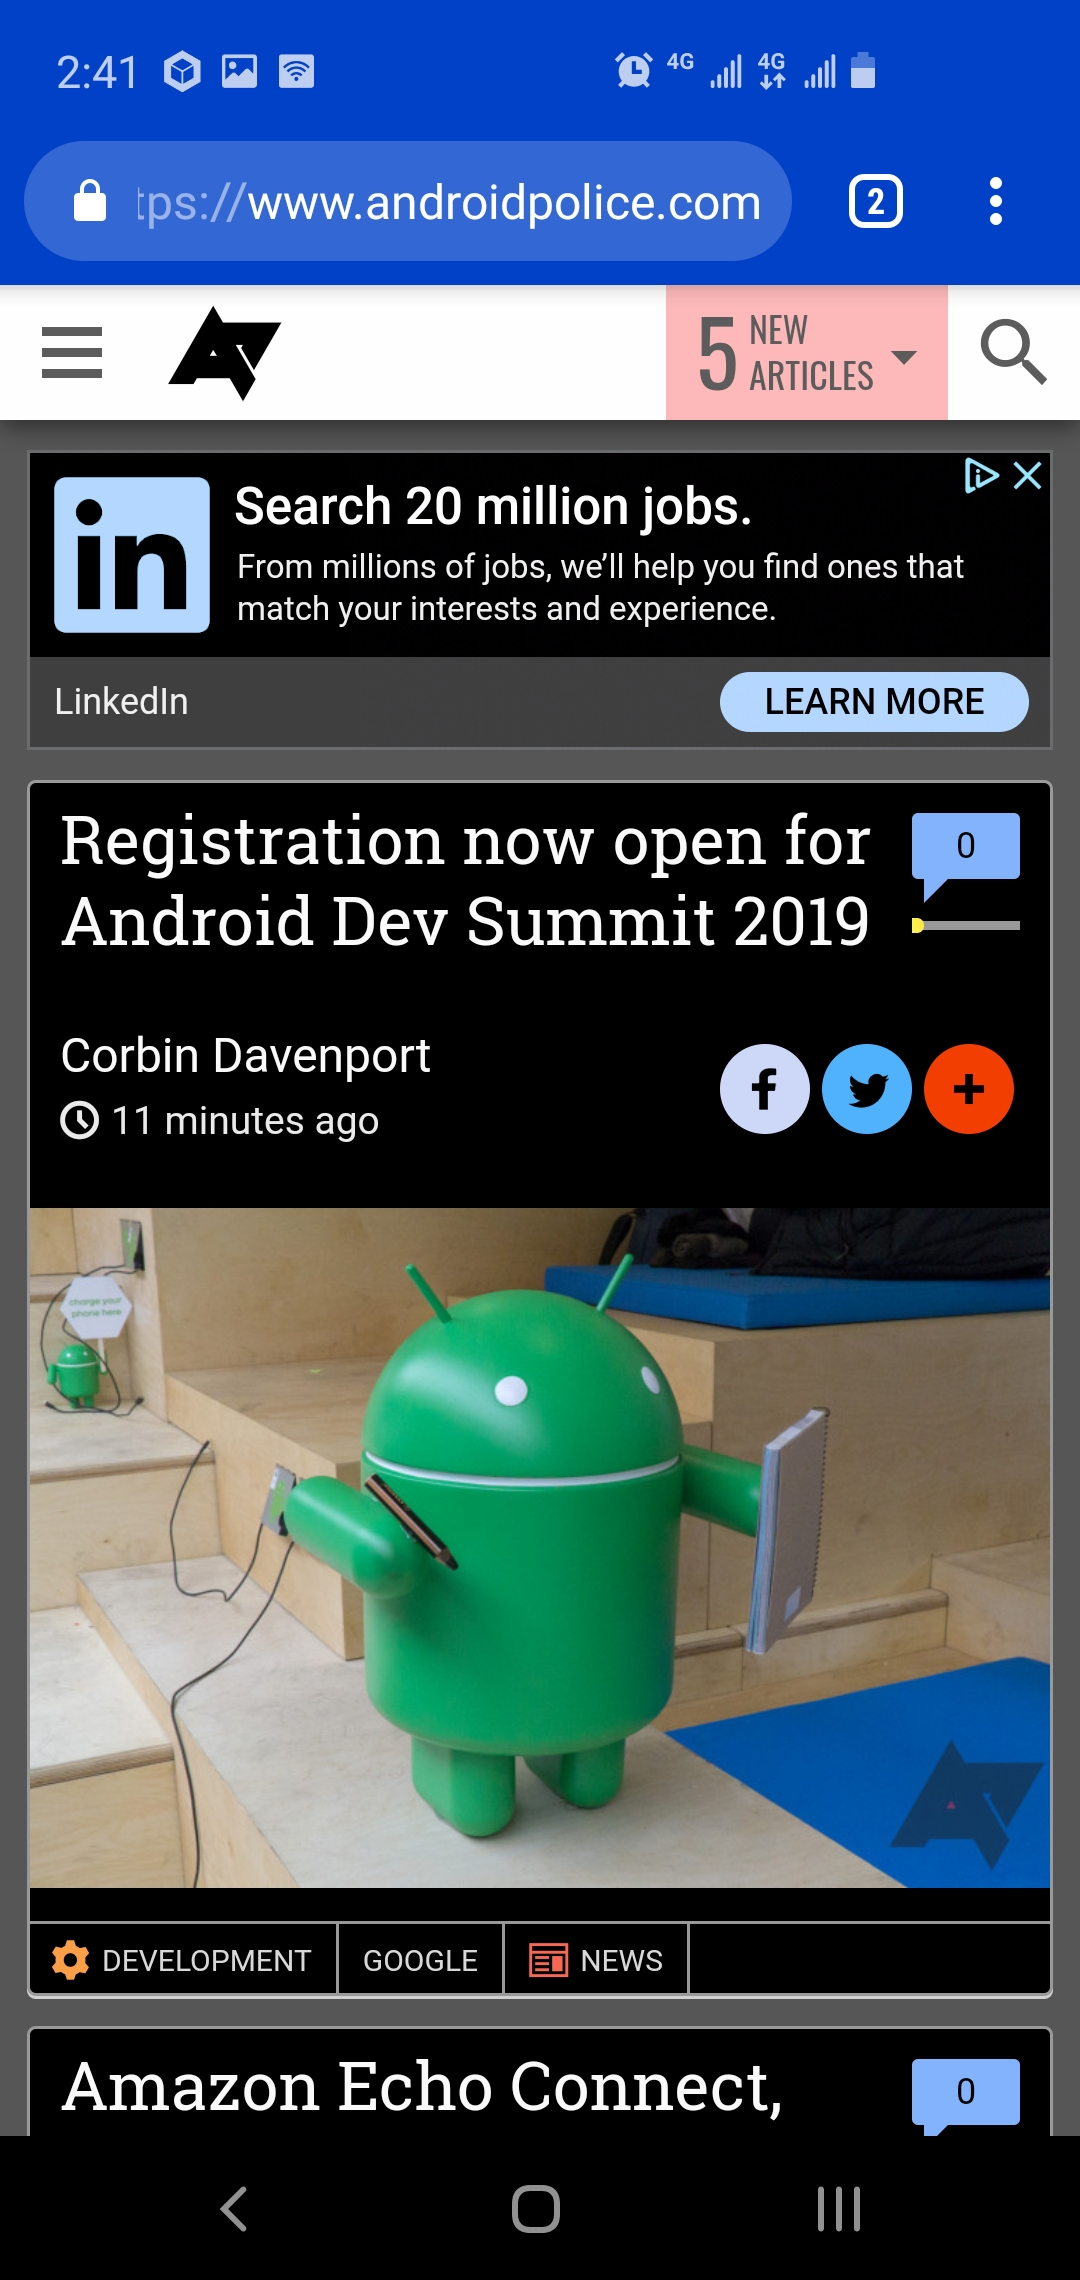 15 tips and tricks for Google Chrome on Android (2019 edition)